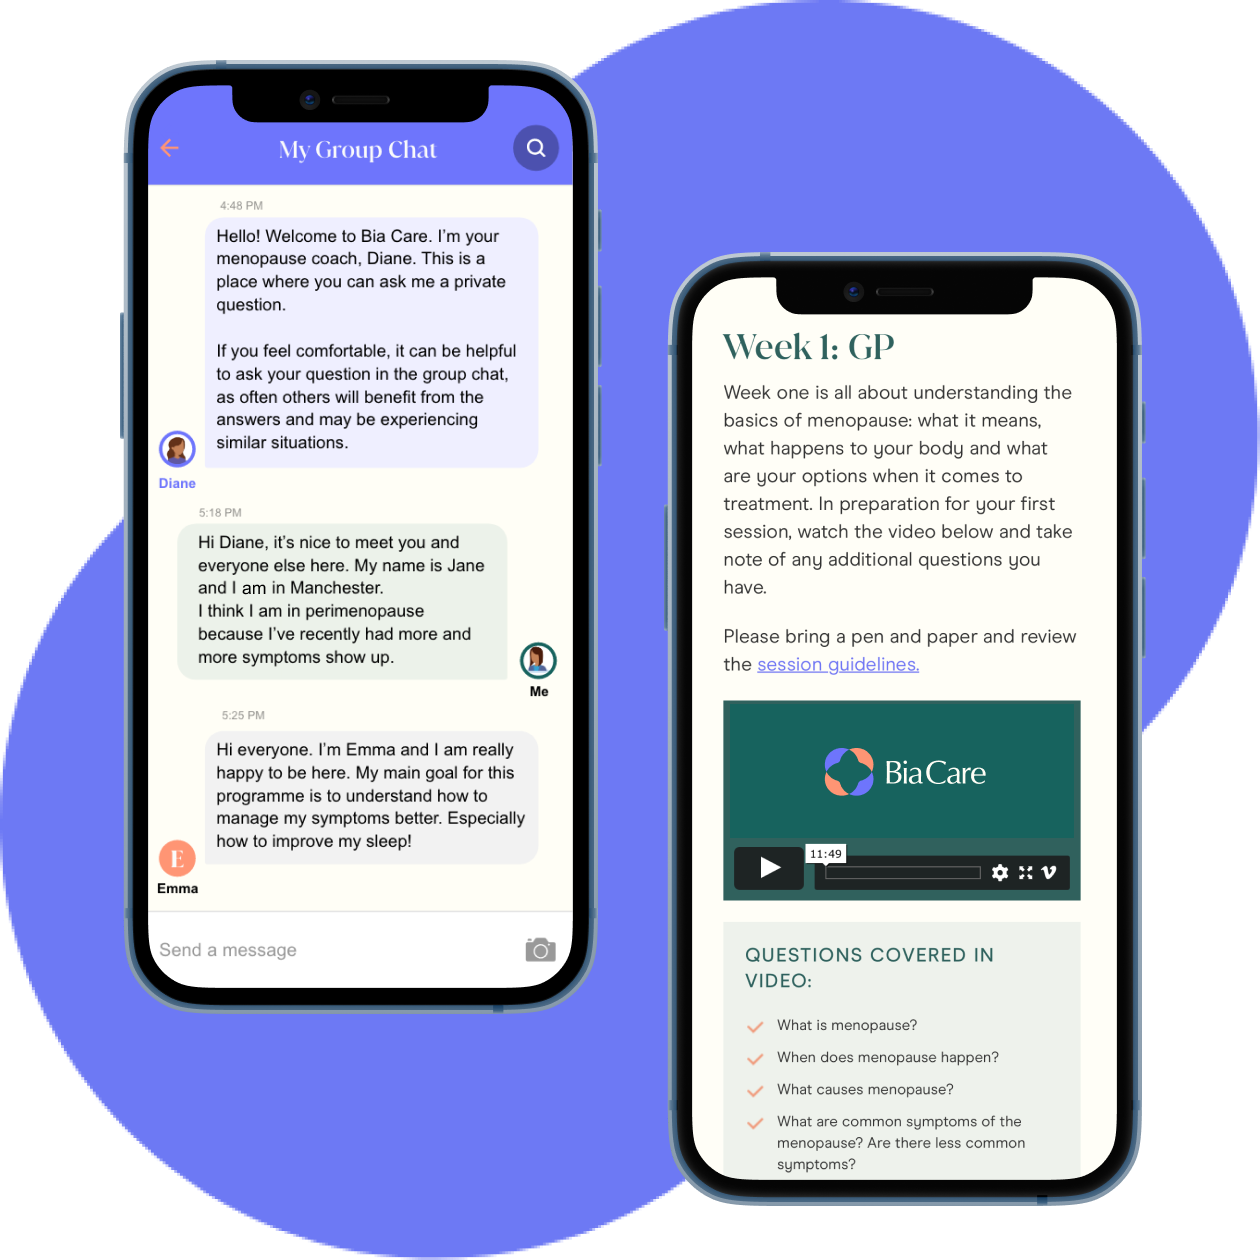 Views of the chat app and menopause content delivered as part of Bia Care's programme.